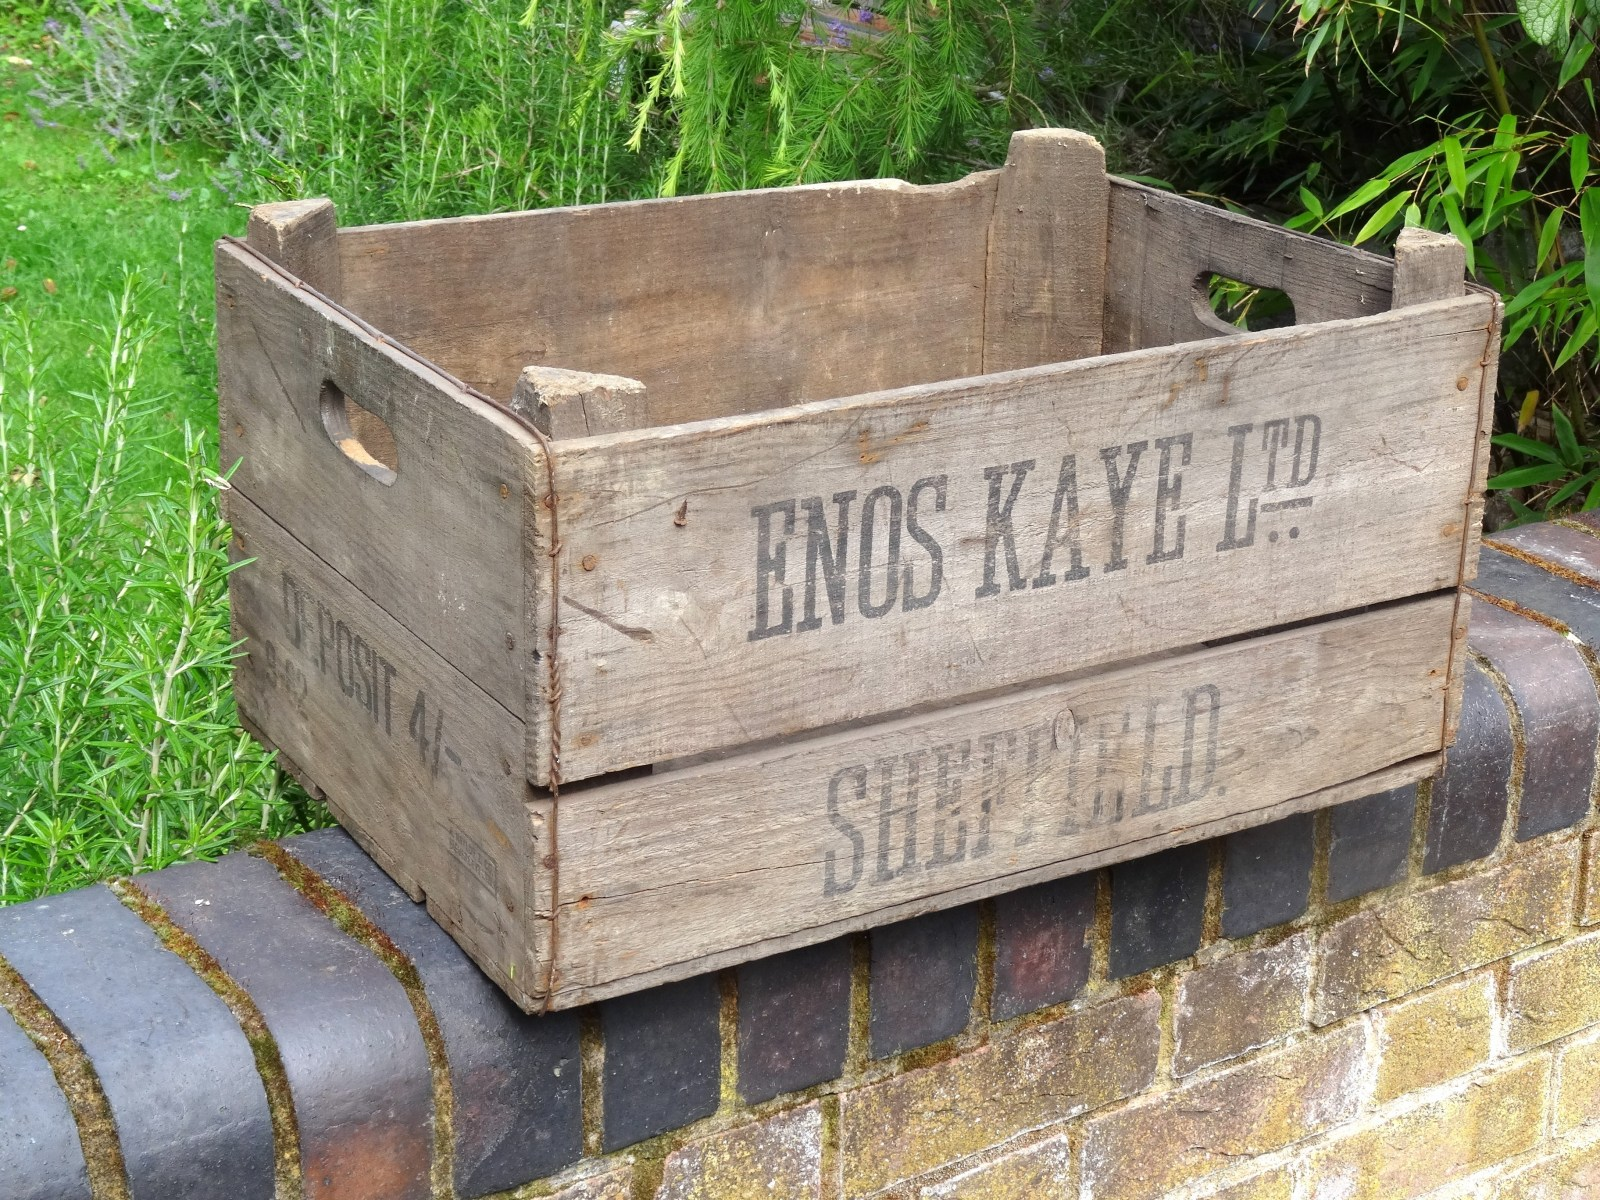 crates Enos Kaye 1 copy.jpeg